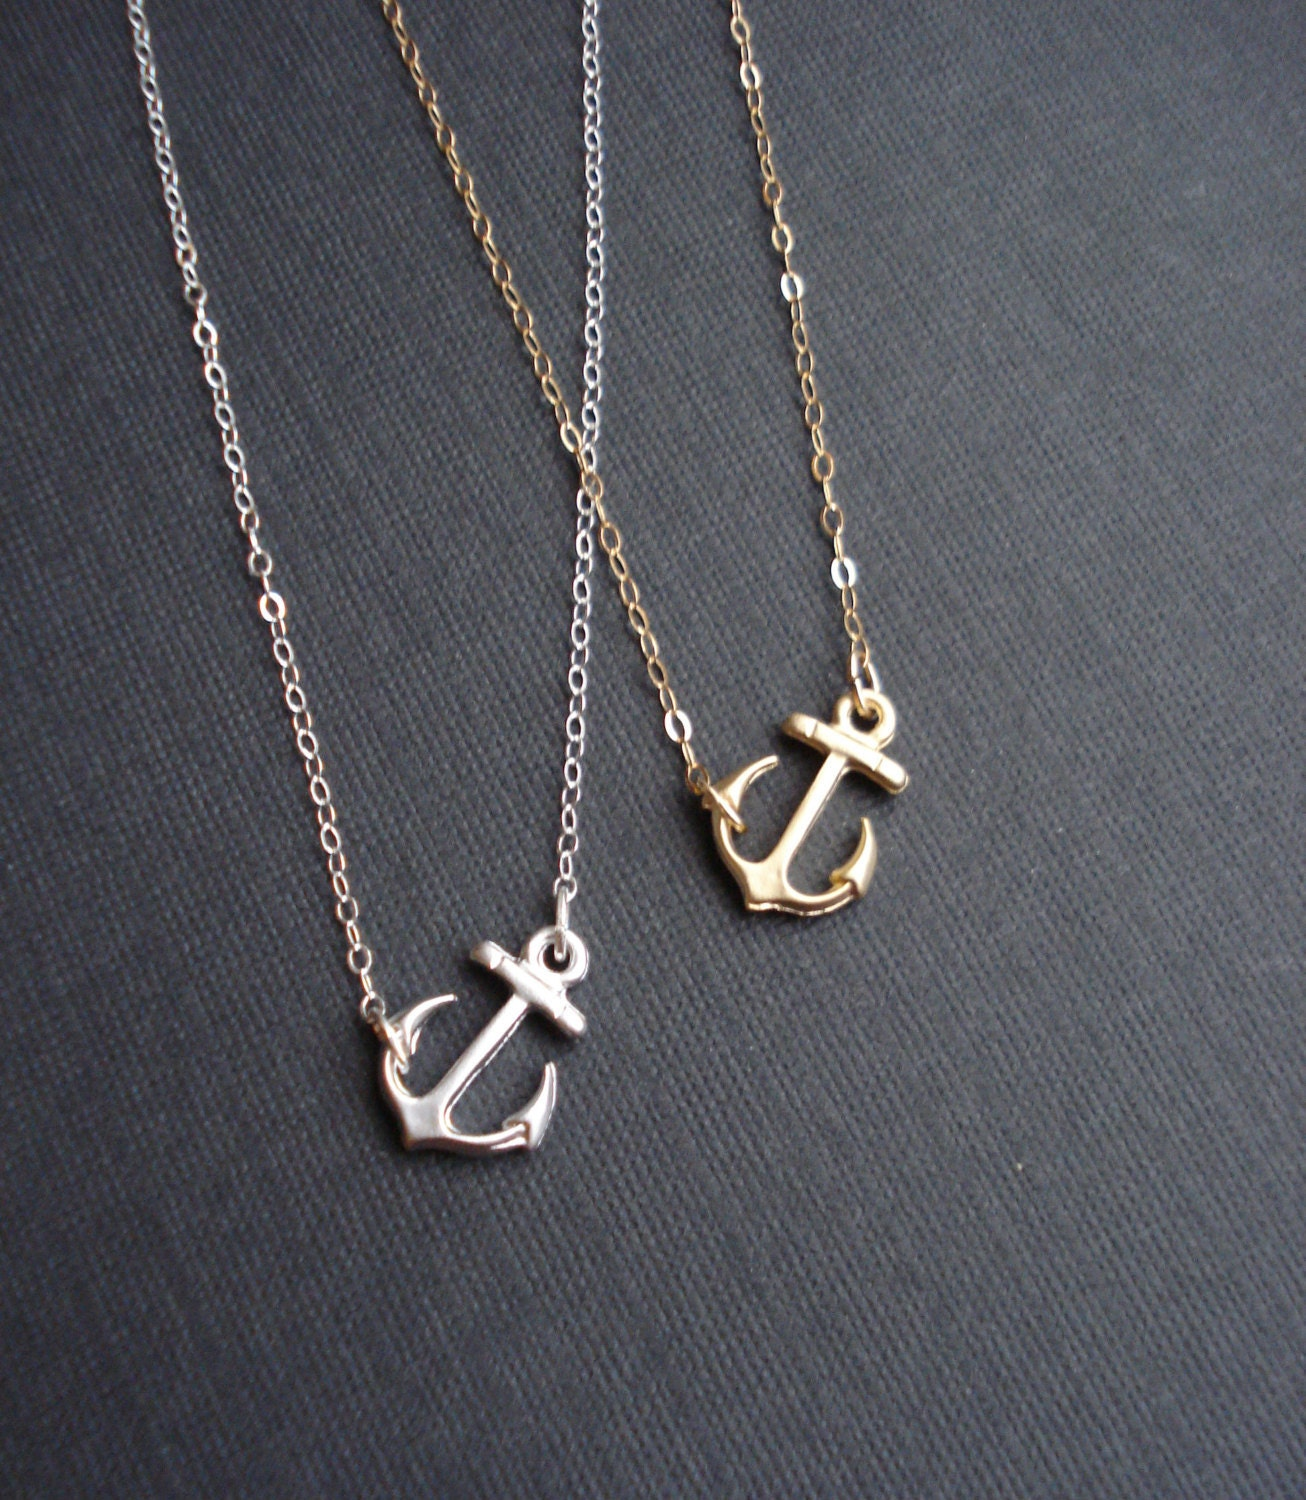 minimalist silver necklace choose your pendant anchor clover